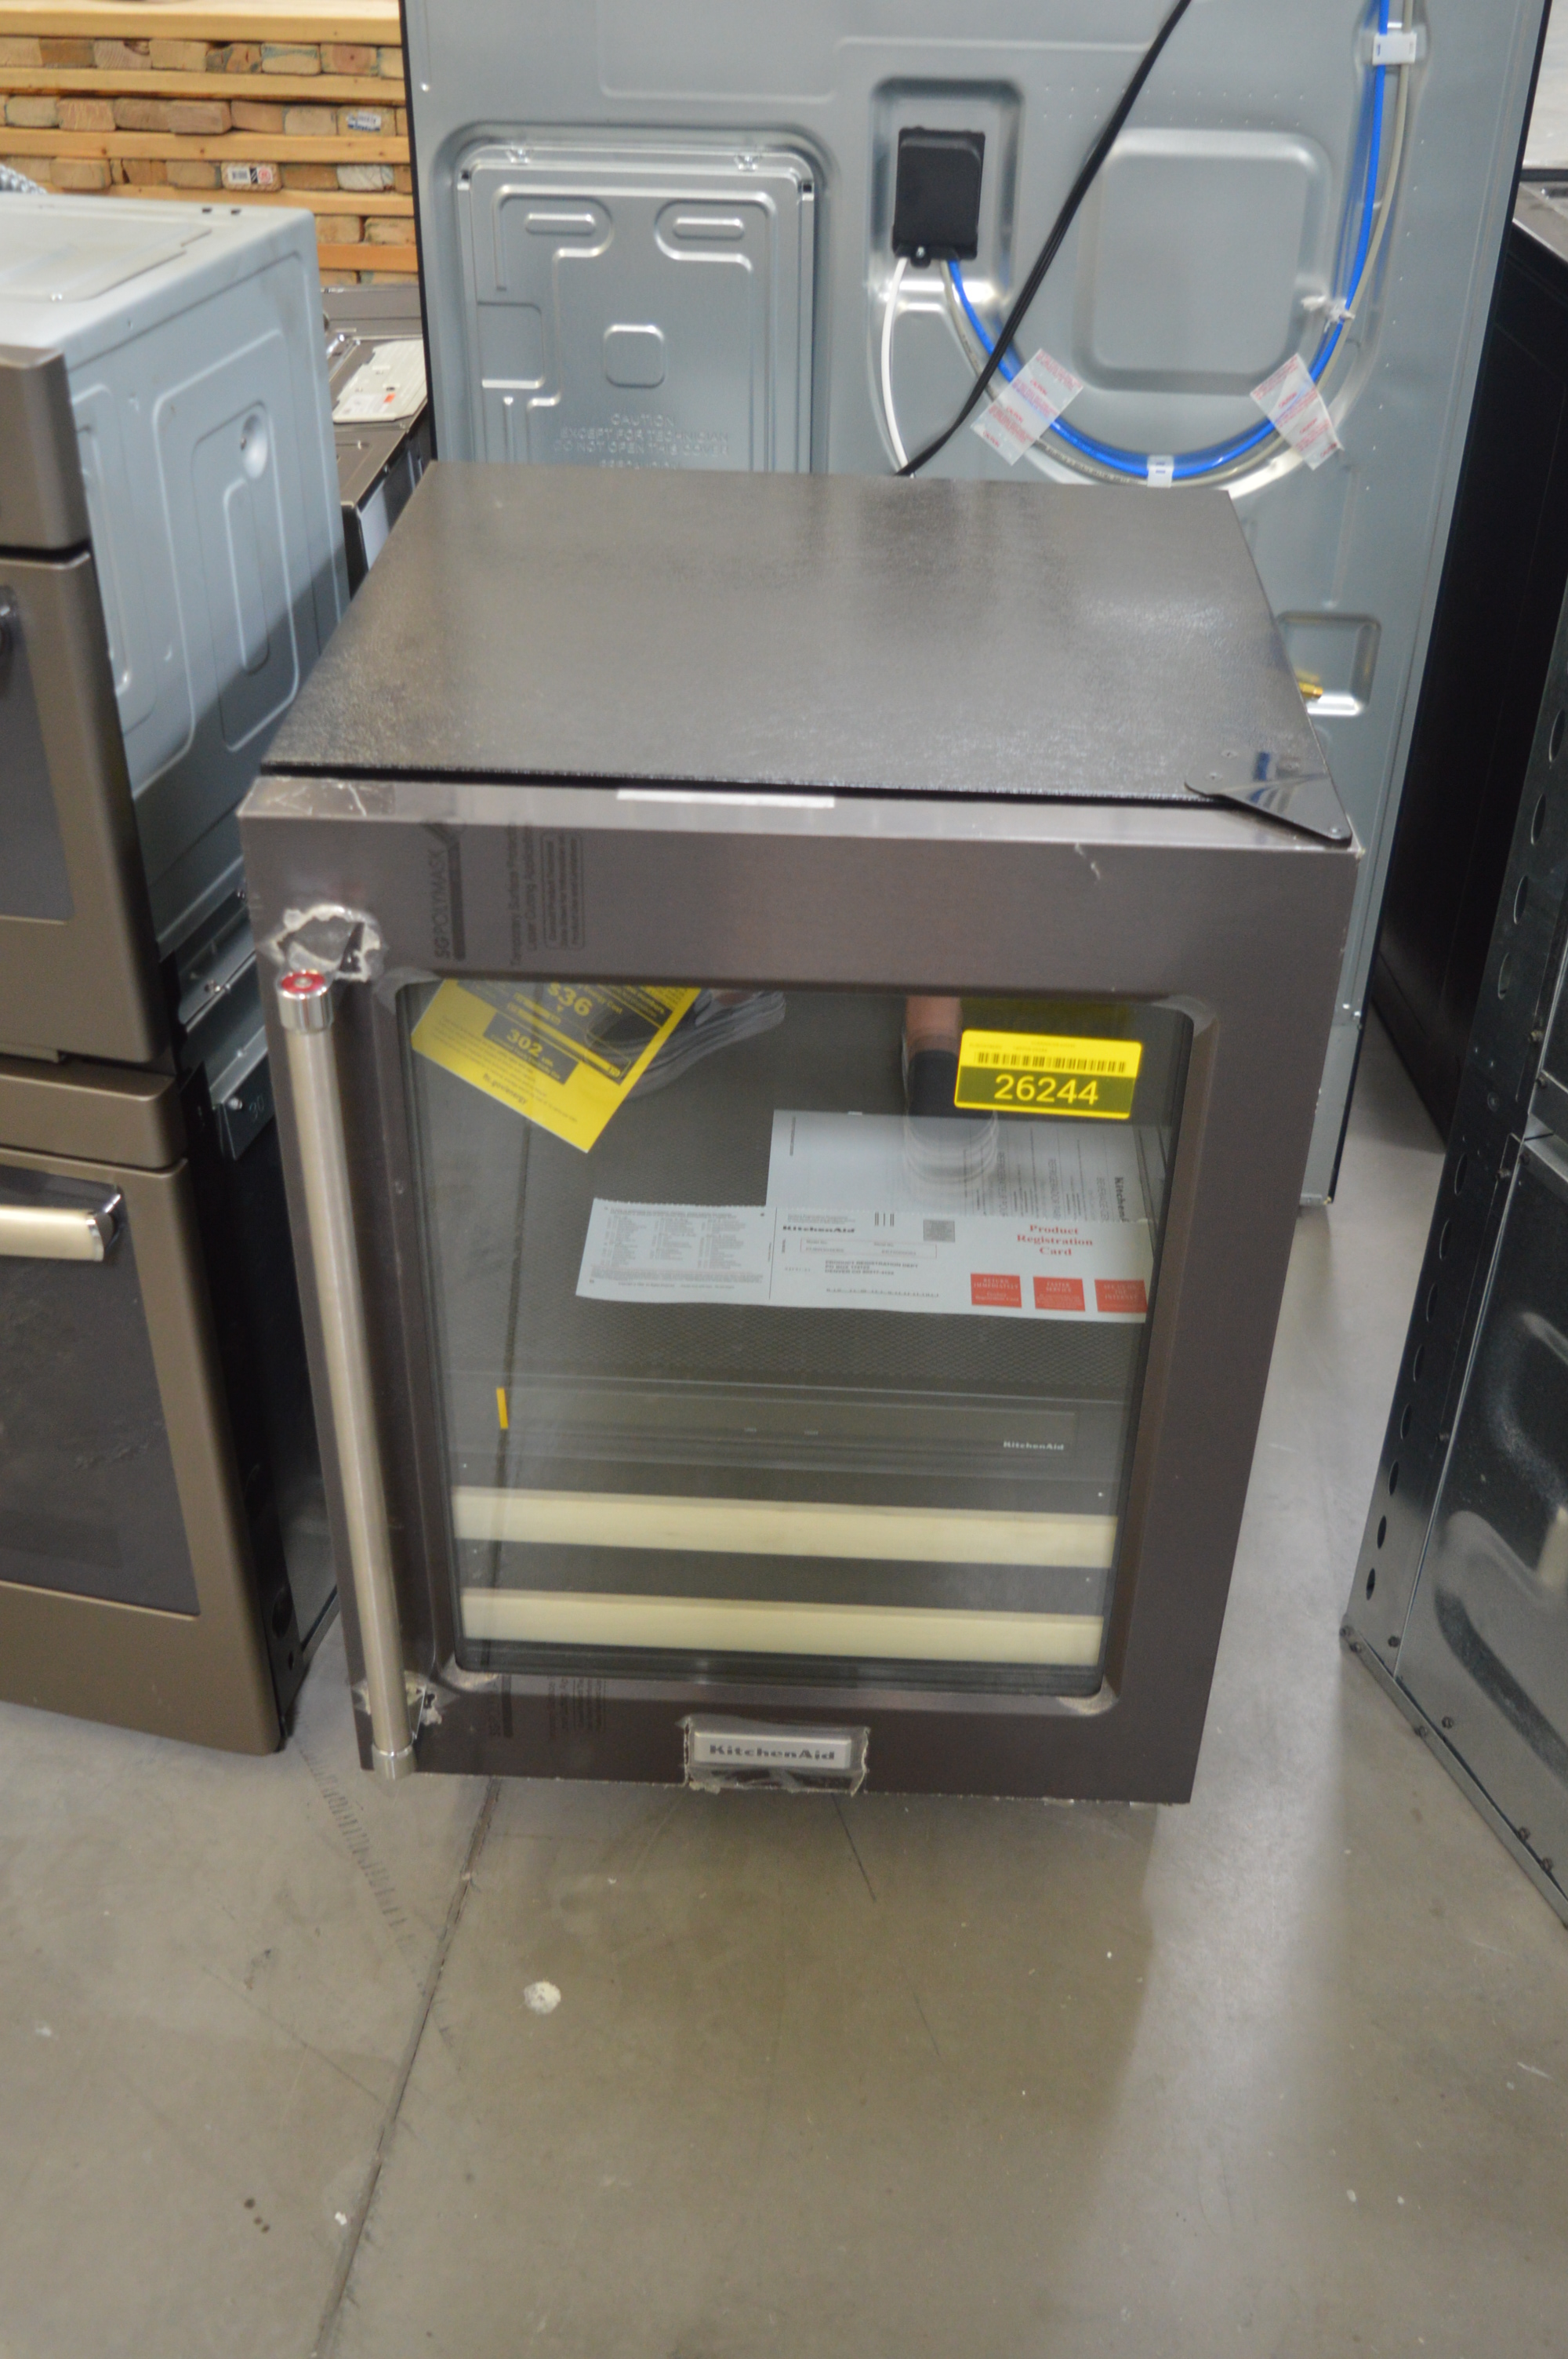 KitchenAid KUBR304EBS 24